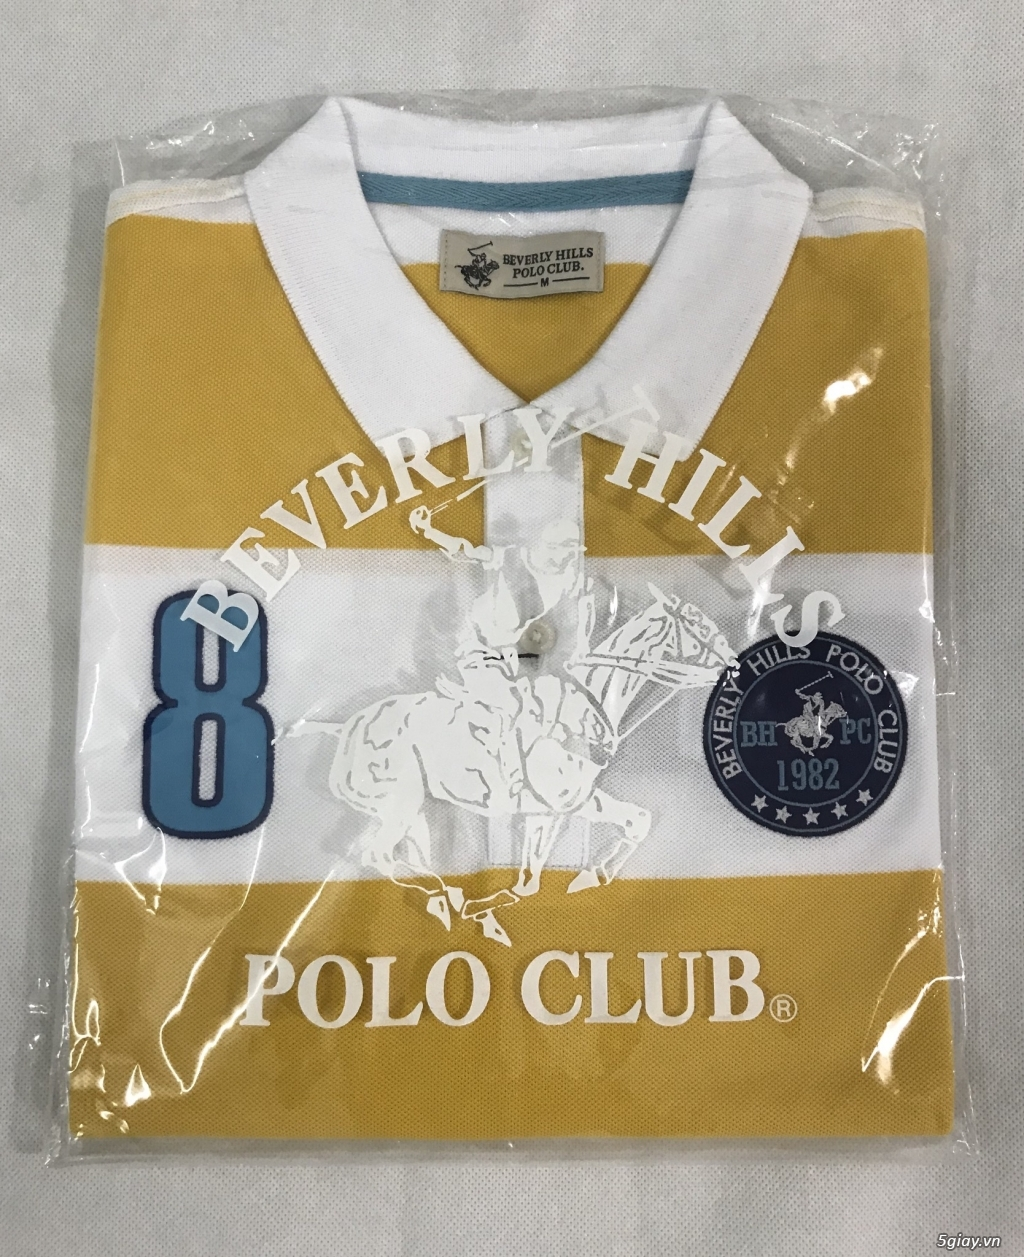 Polo RL,tonny hilfiger,guess,polo club beverly hills ... usa